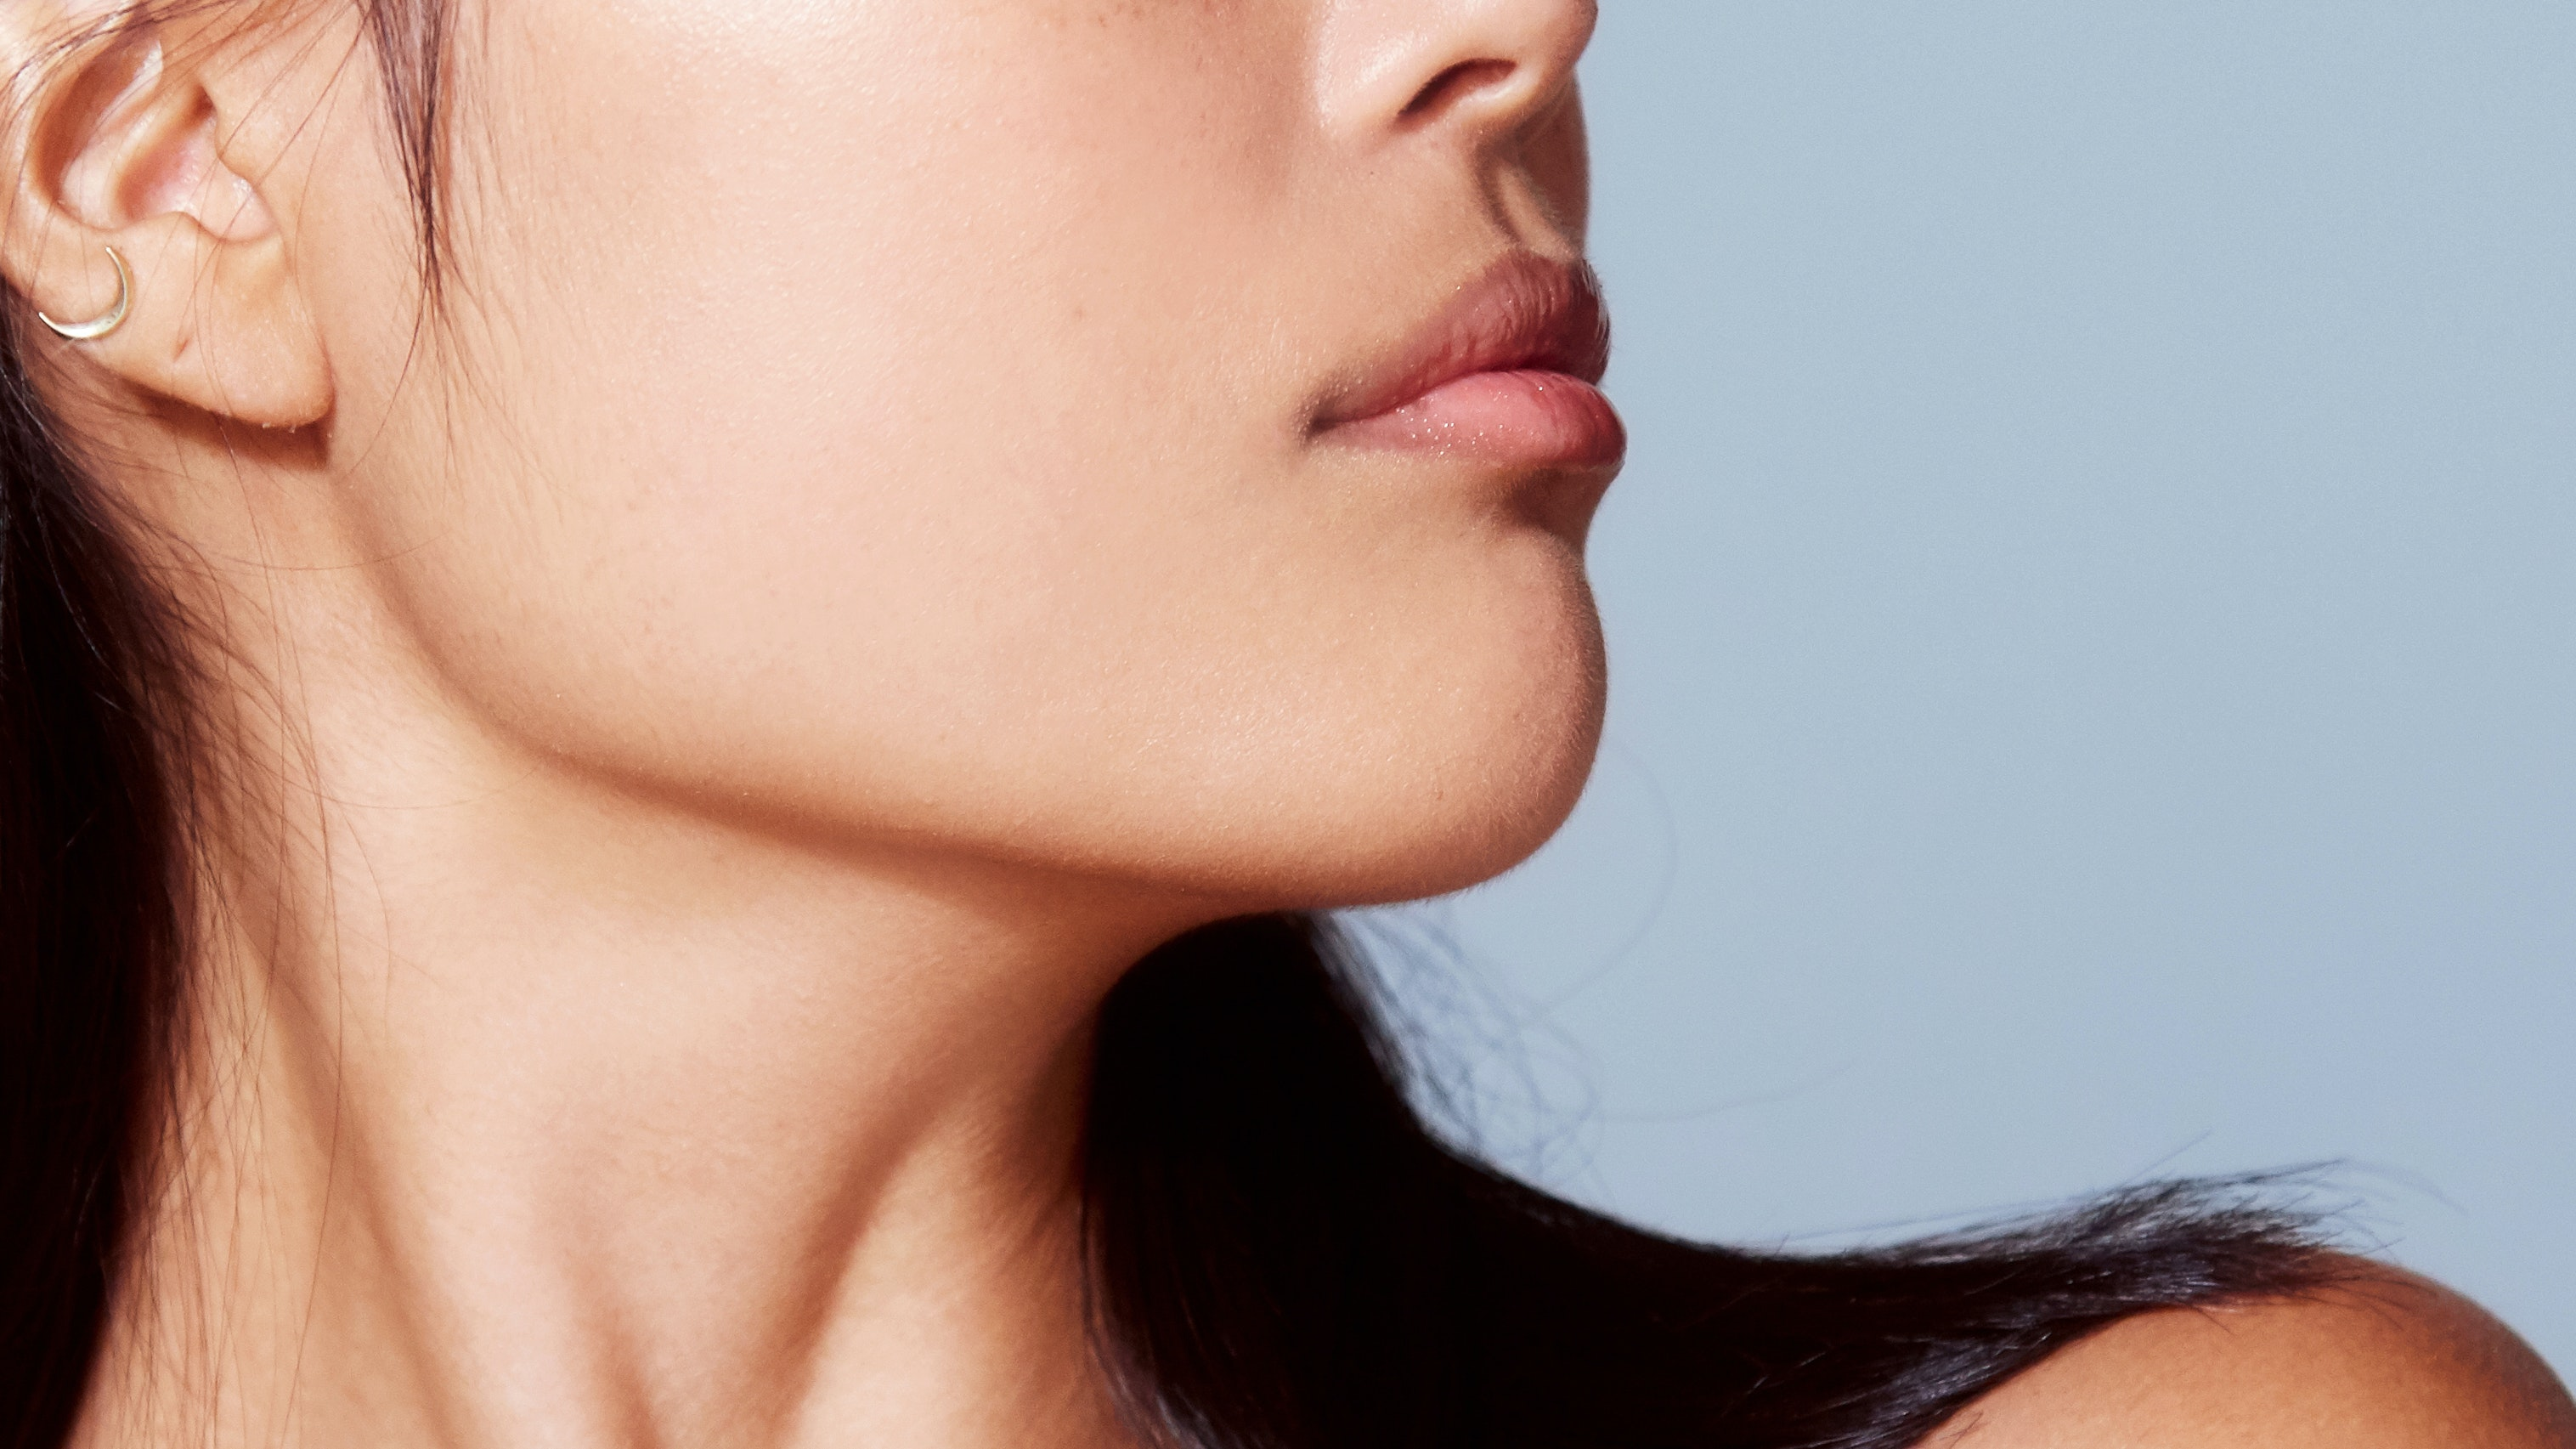 7 Truths That Women Wish They'd Known Before Getting Lip Filler